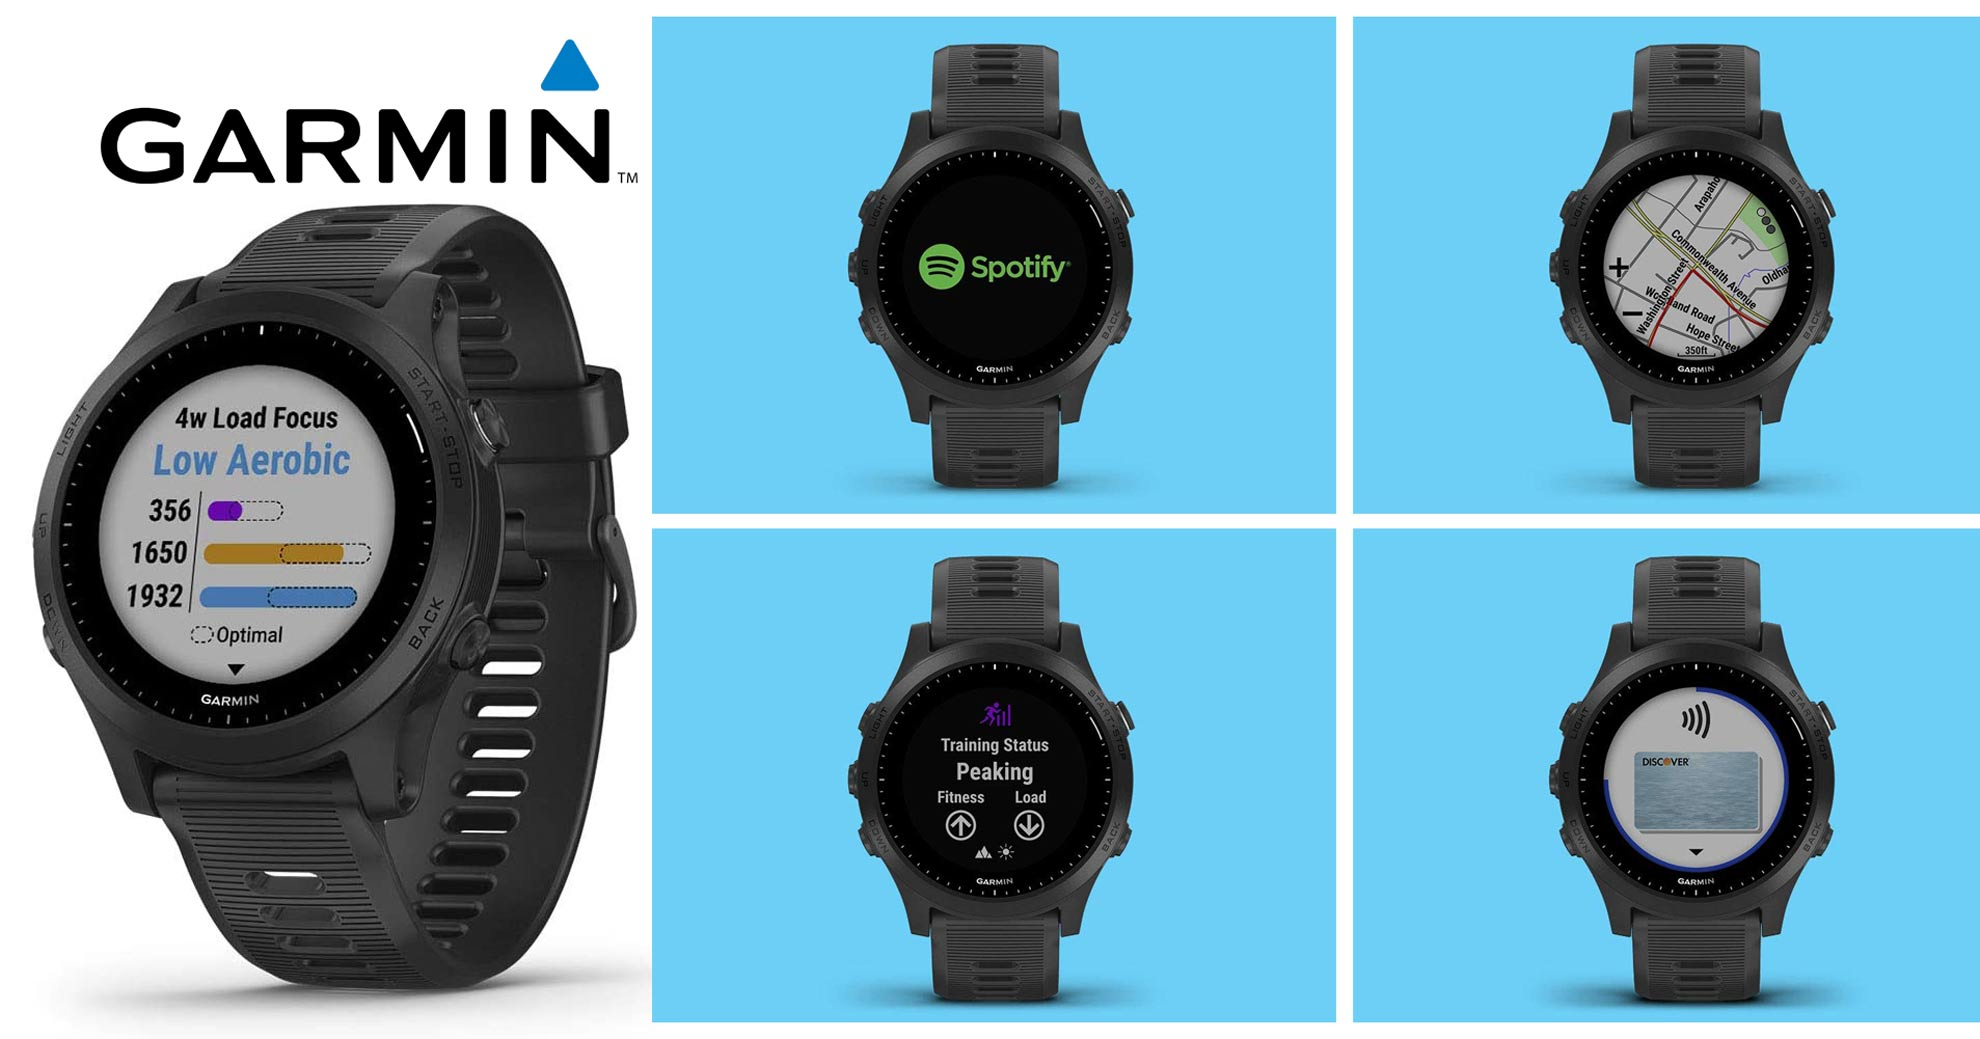 Best GPS Running Watch | Garmin Forerunner Series